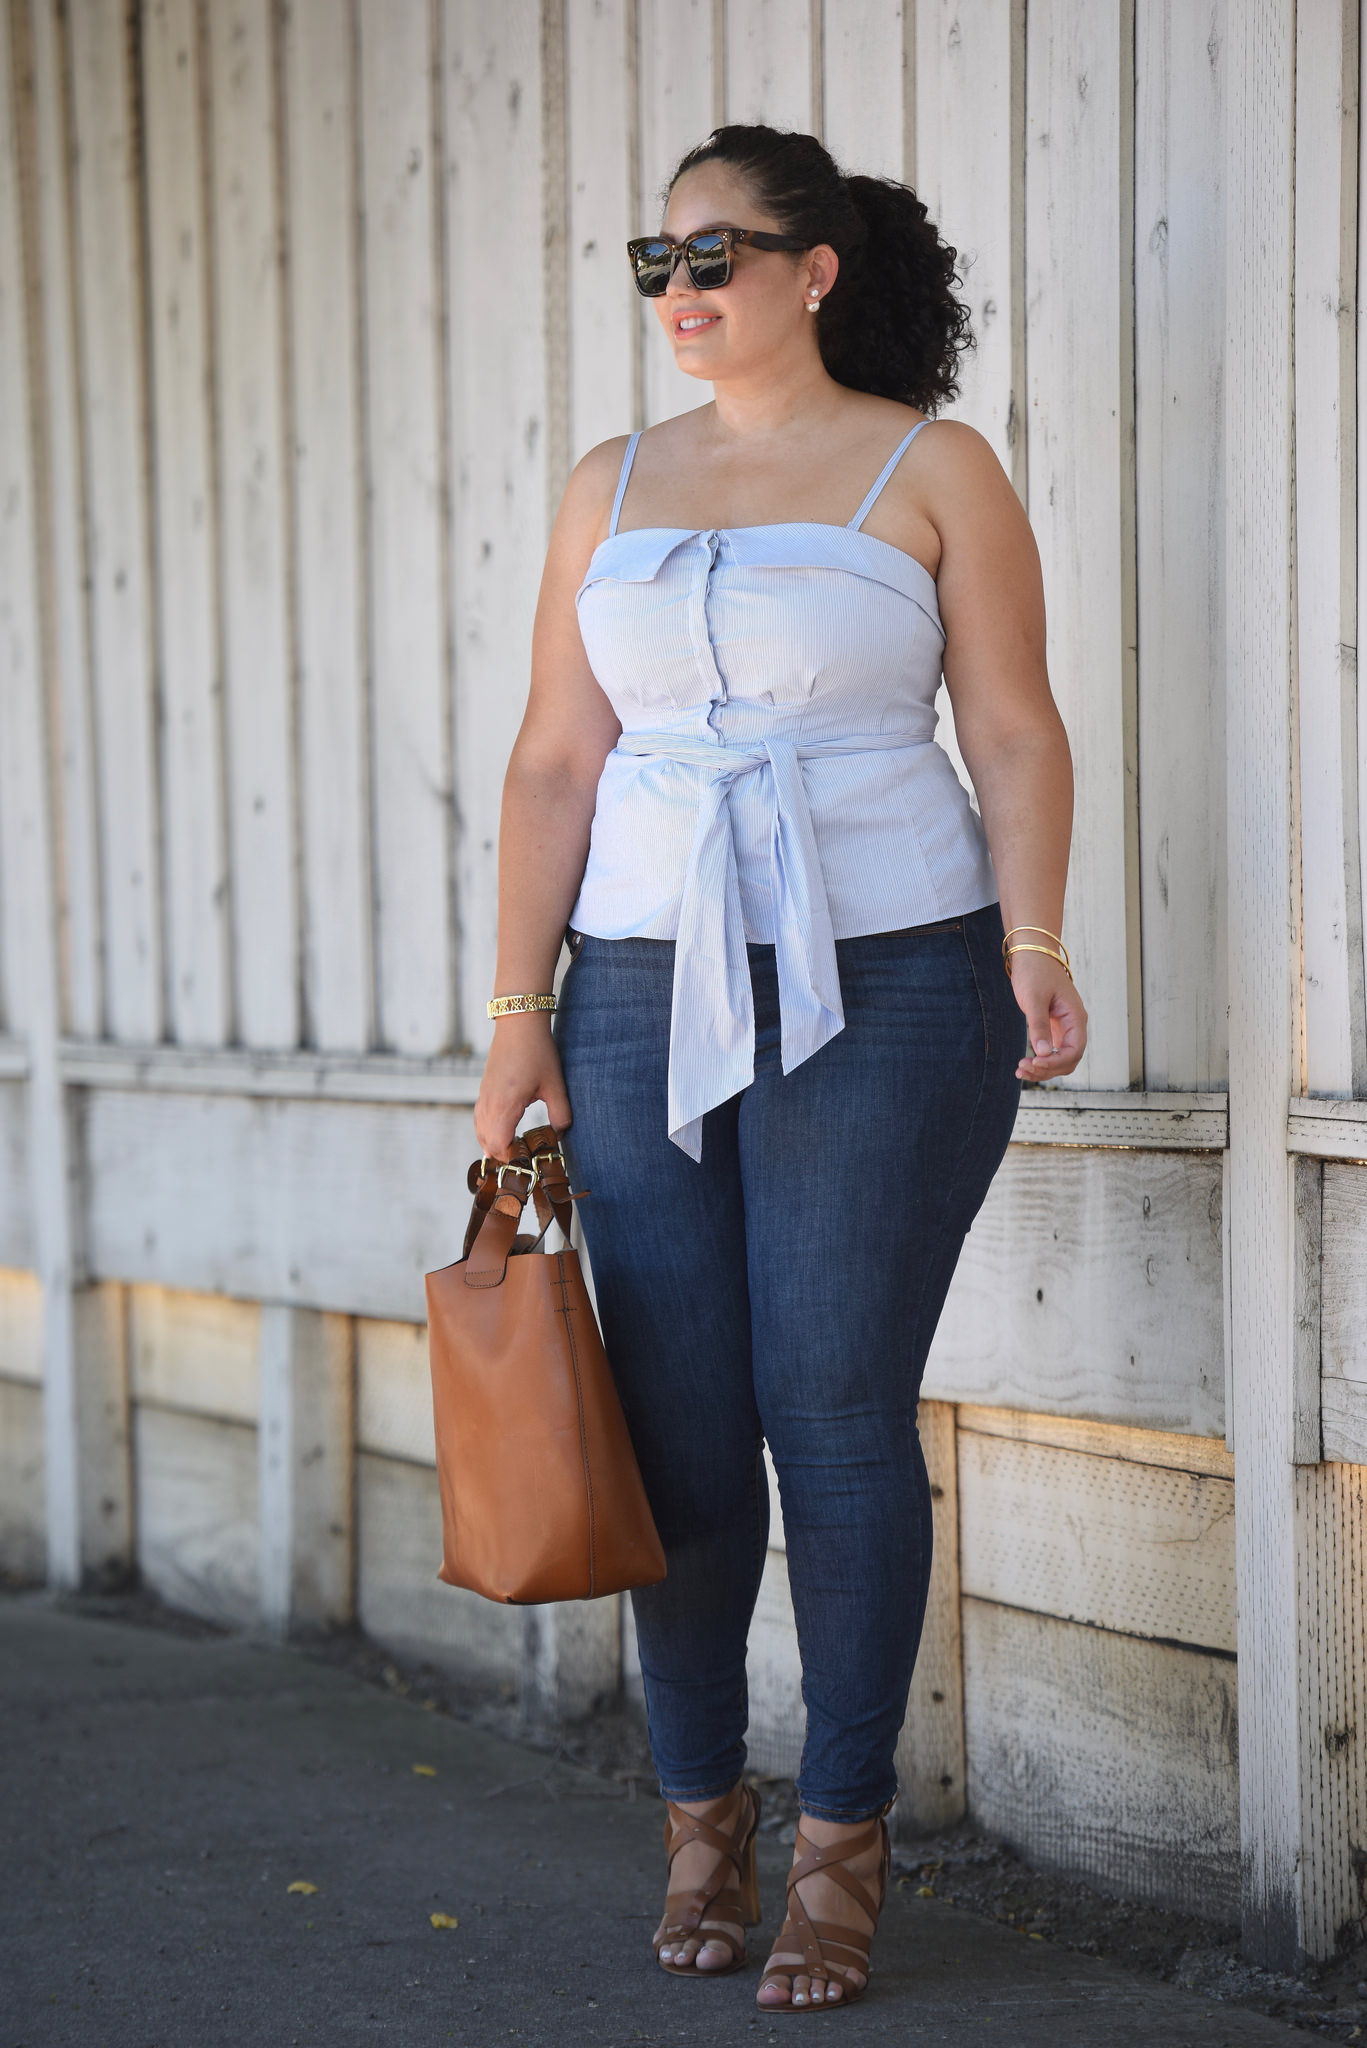 Tanesha Awasthi (girl with curves) wearing a Front Tie Bustie Topr, Skinny Jeans, cognac Tote Bag, strappy sandals